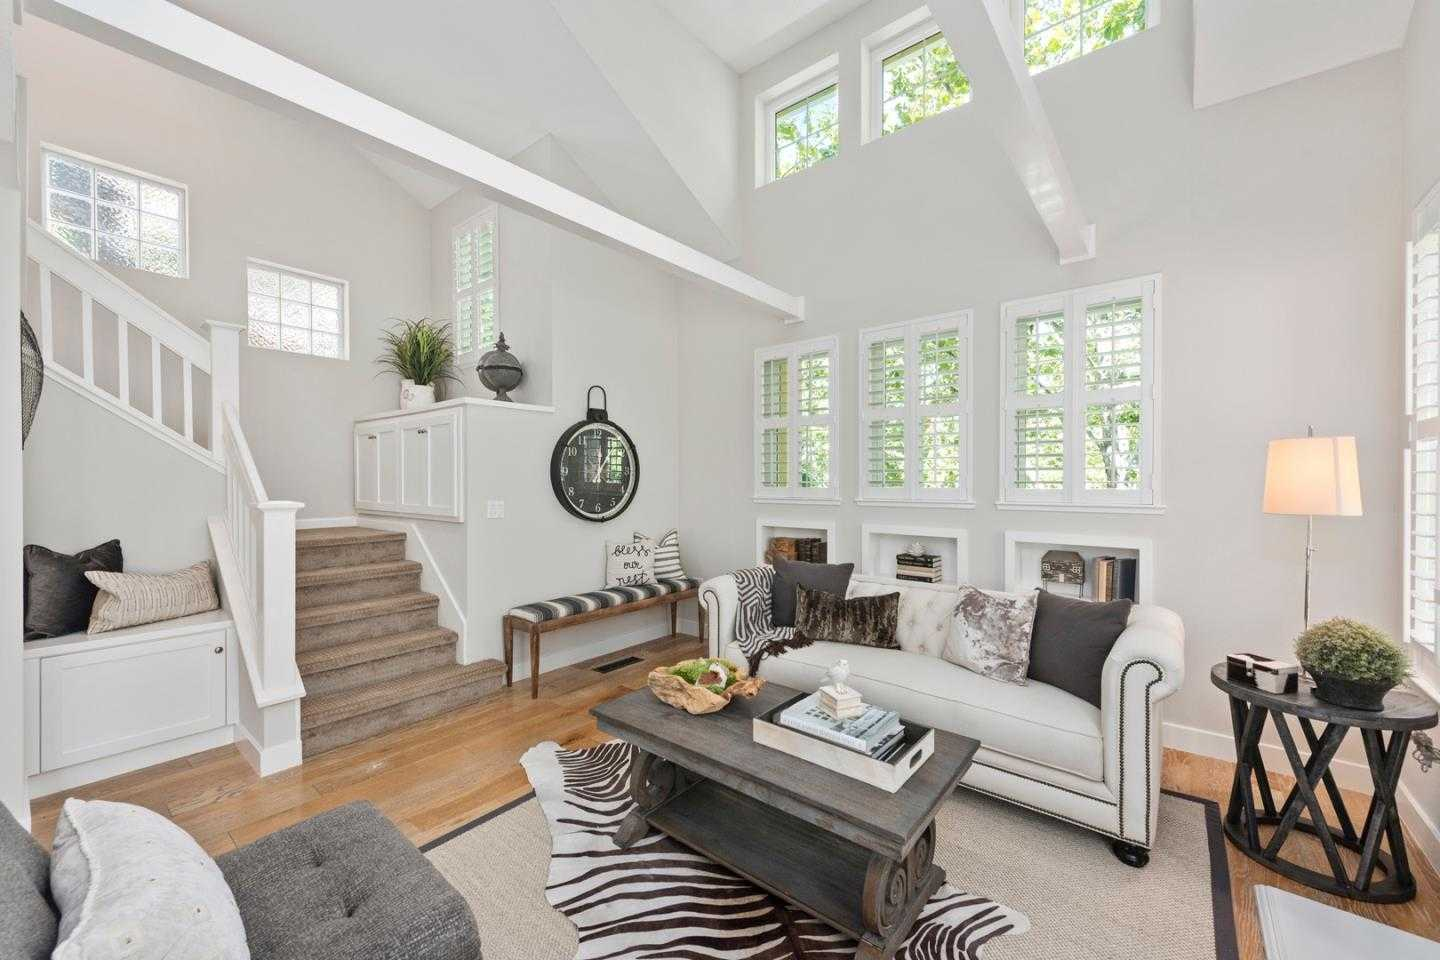 $1,875,000 - 3Br/3Ba -  for Sale in Mountain View